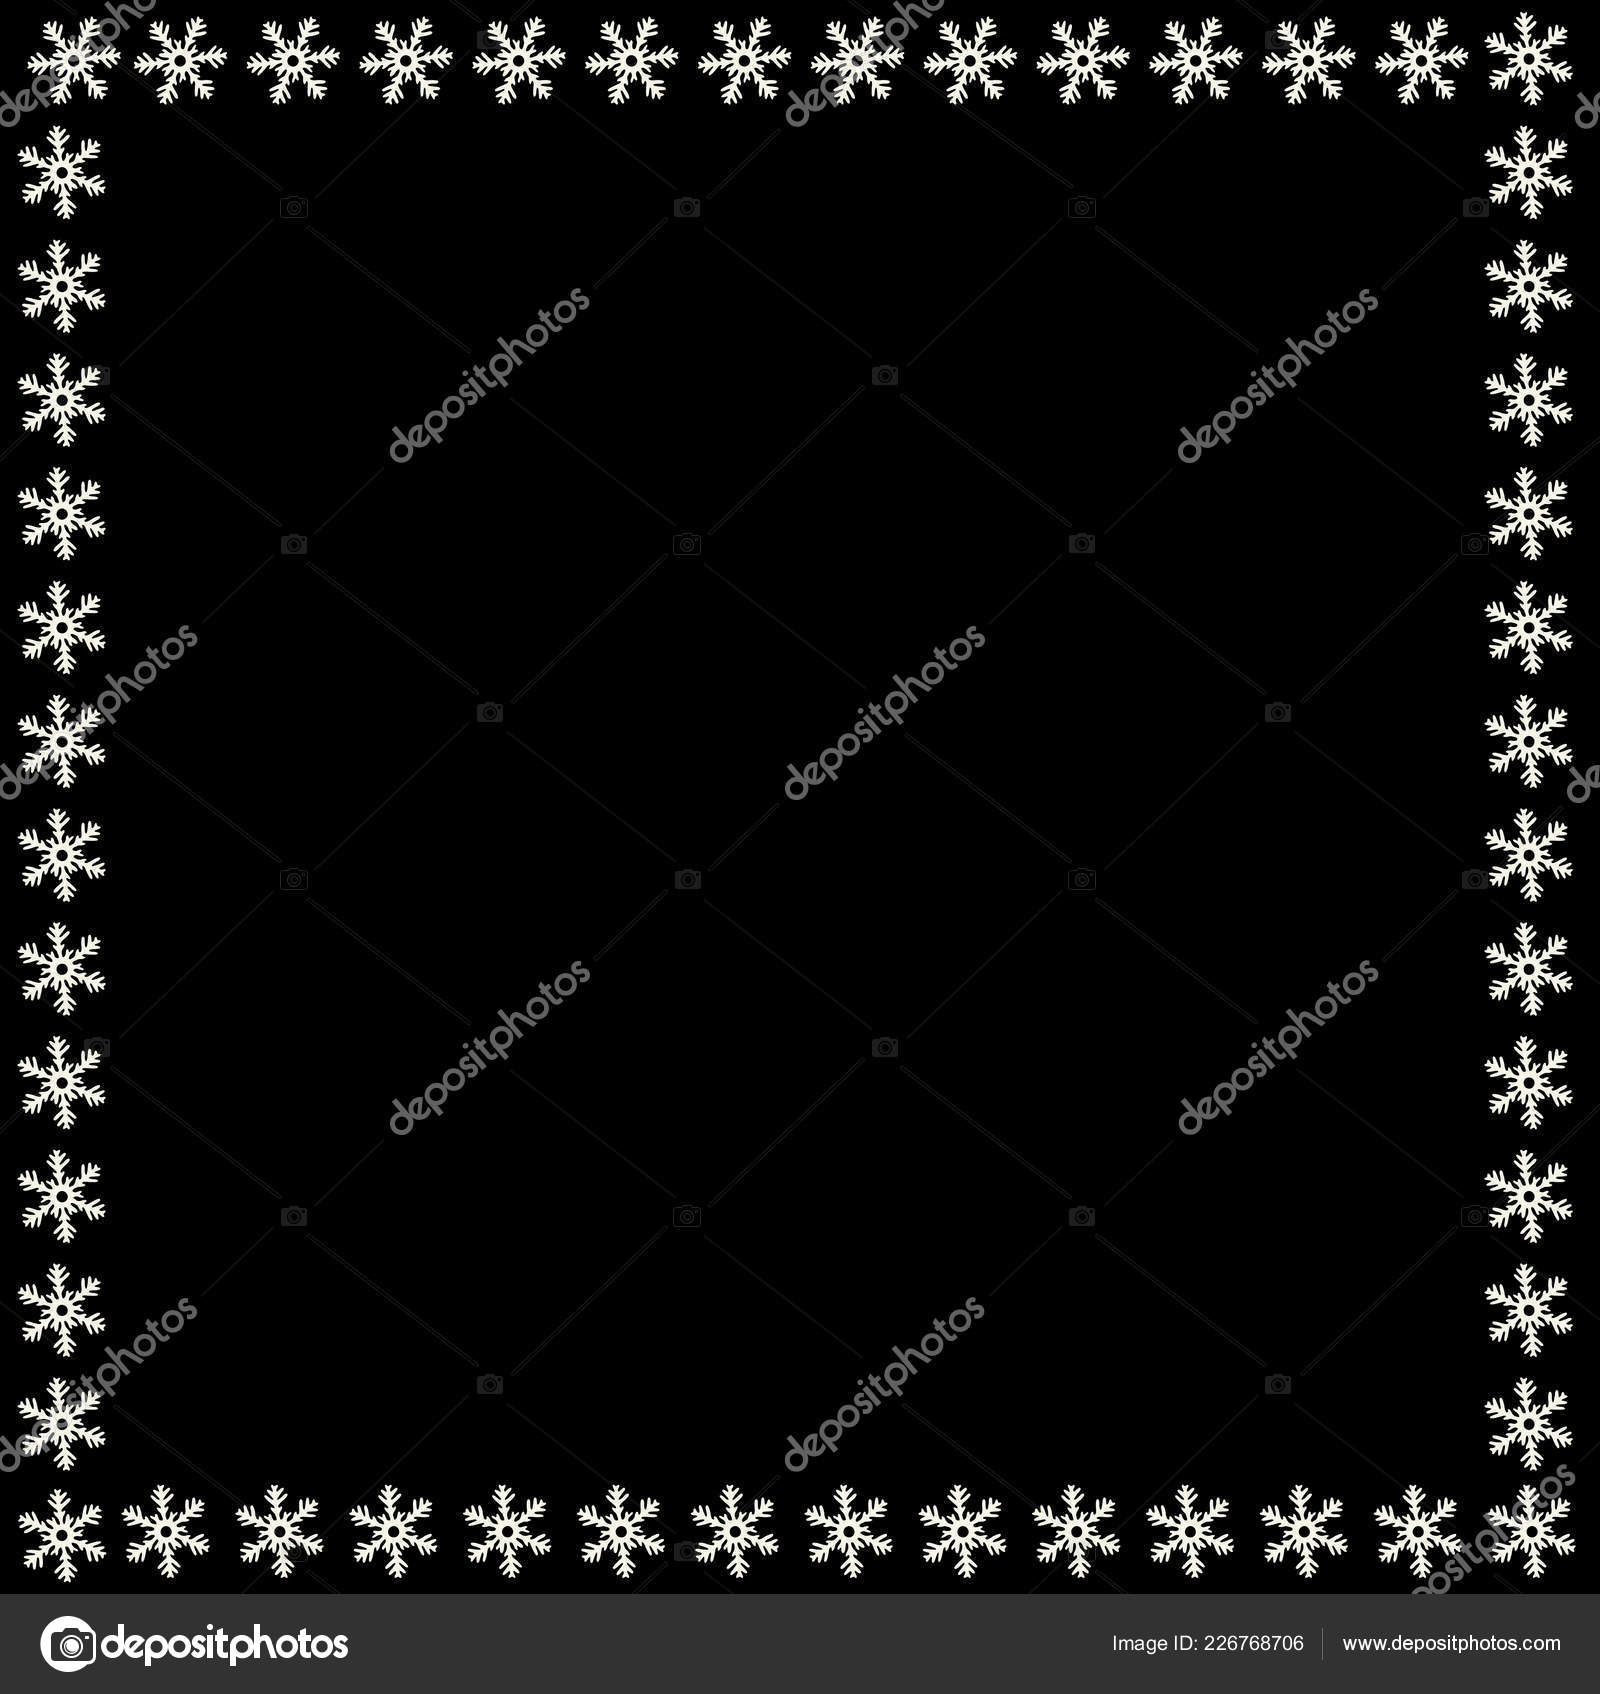 snowflake border christmas new year holidays square snowflakes frame black stock vector